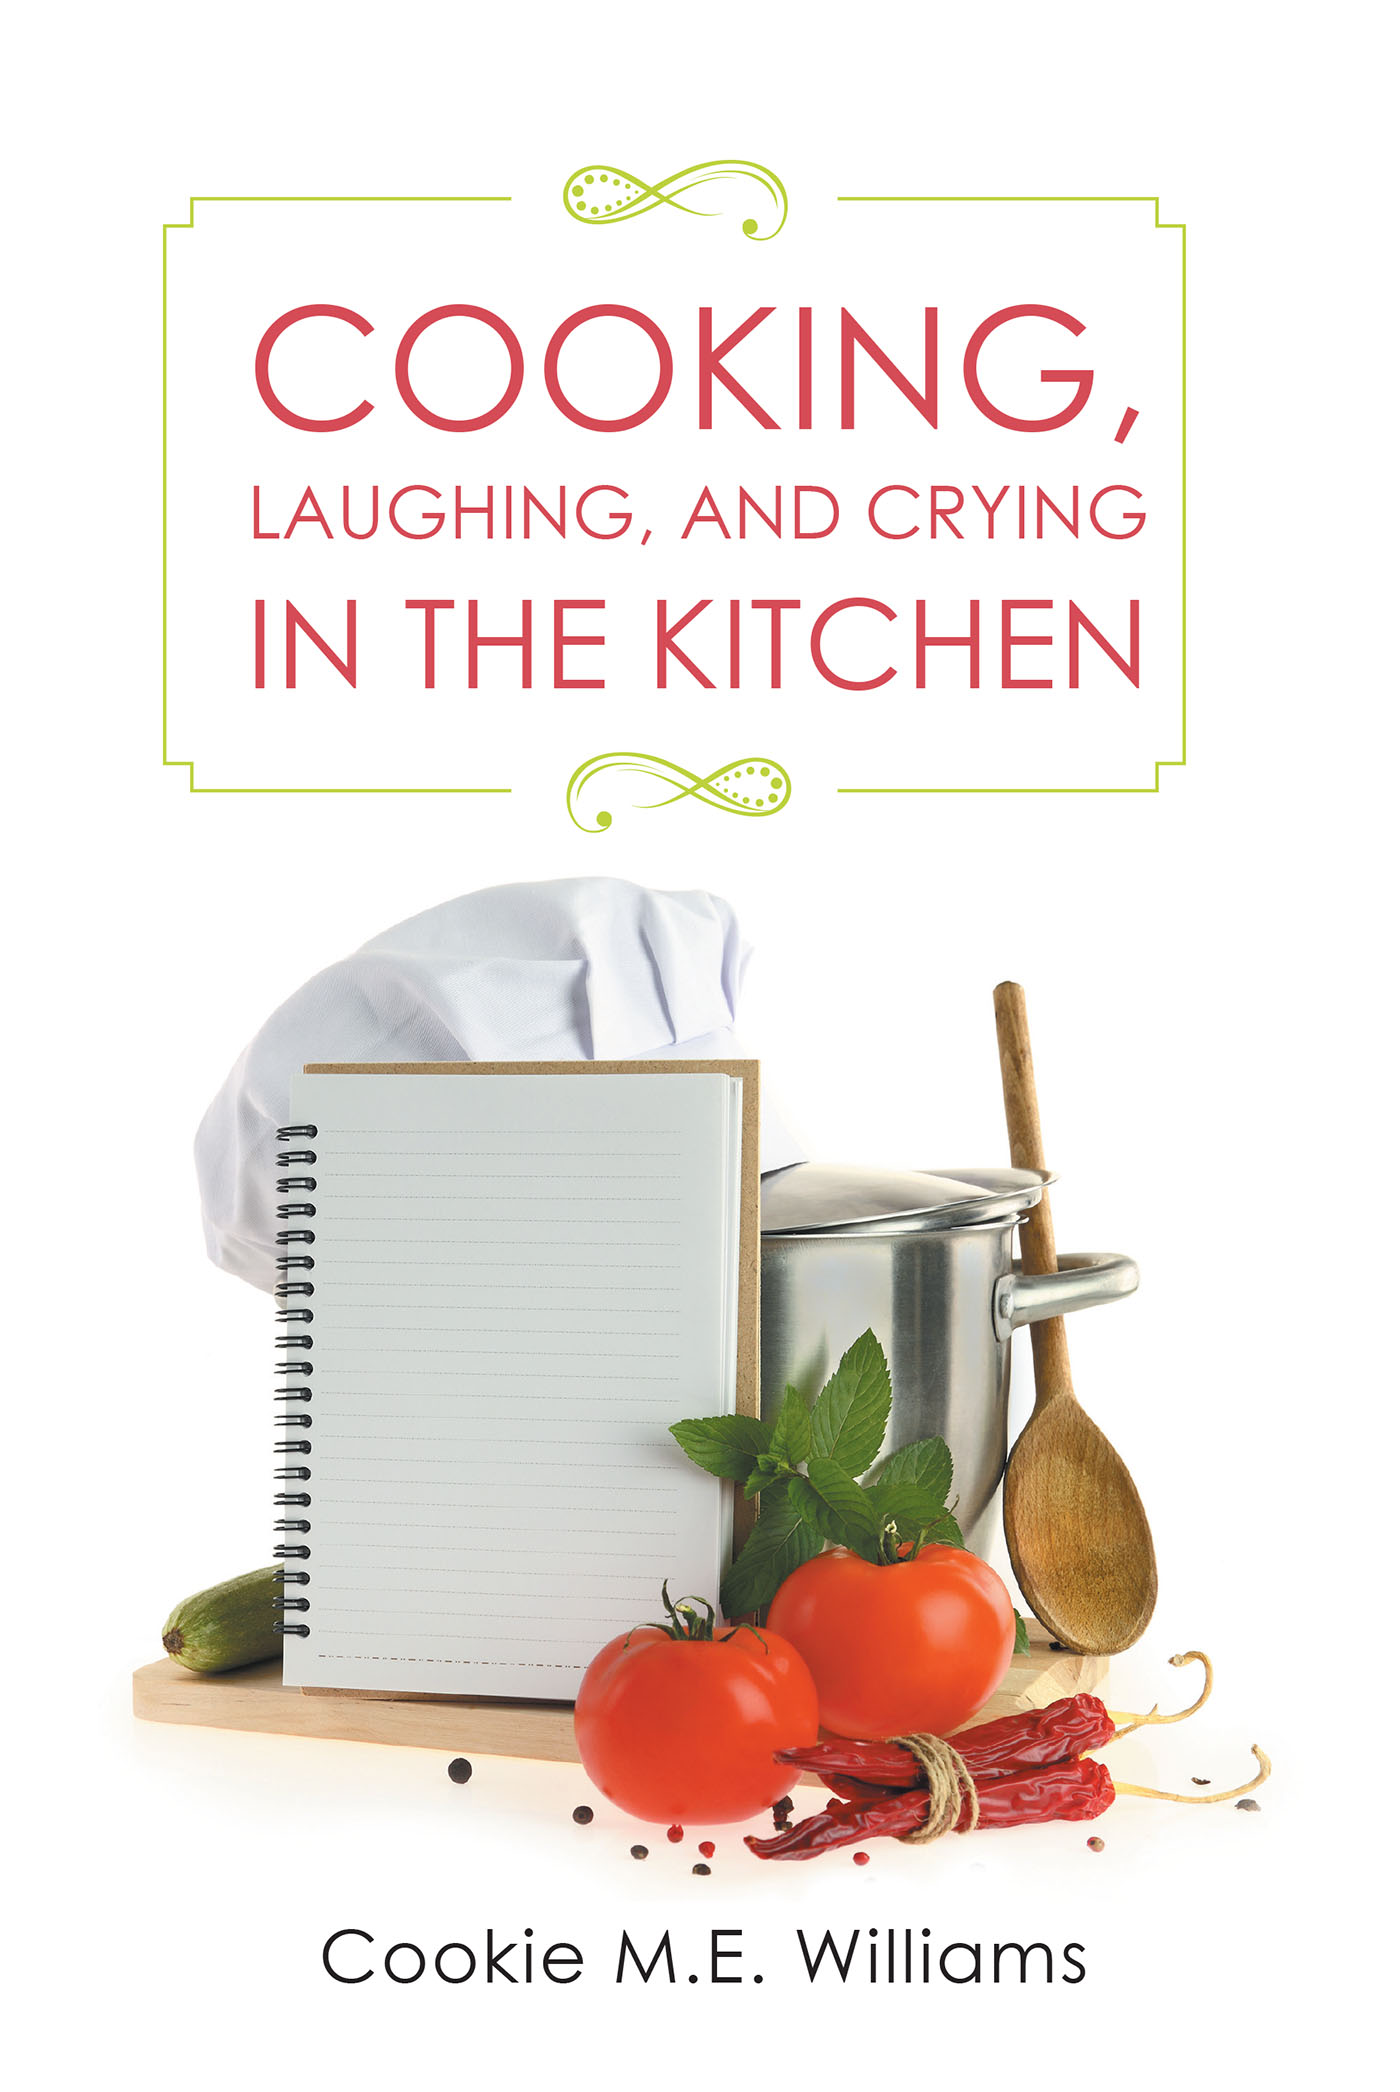 essays on family recipes Monica i can just smell the onions and garlic and spices my changes to family recipes have been complicated by a diagnosis of celiac disease for me and my teens.